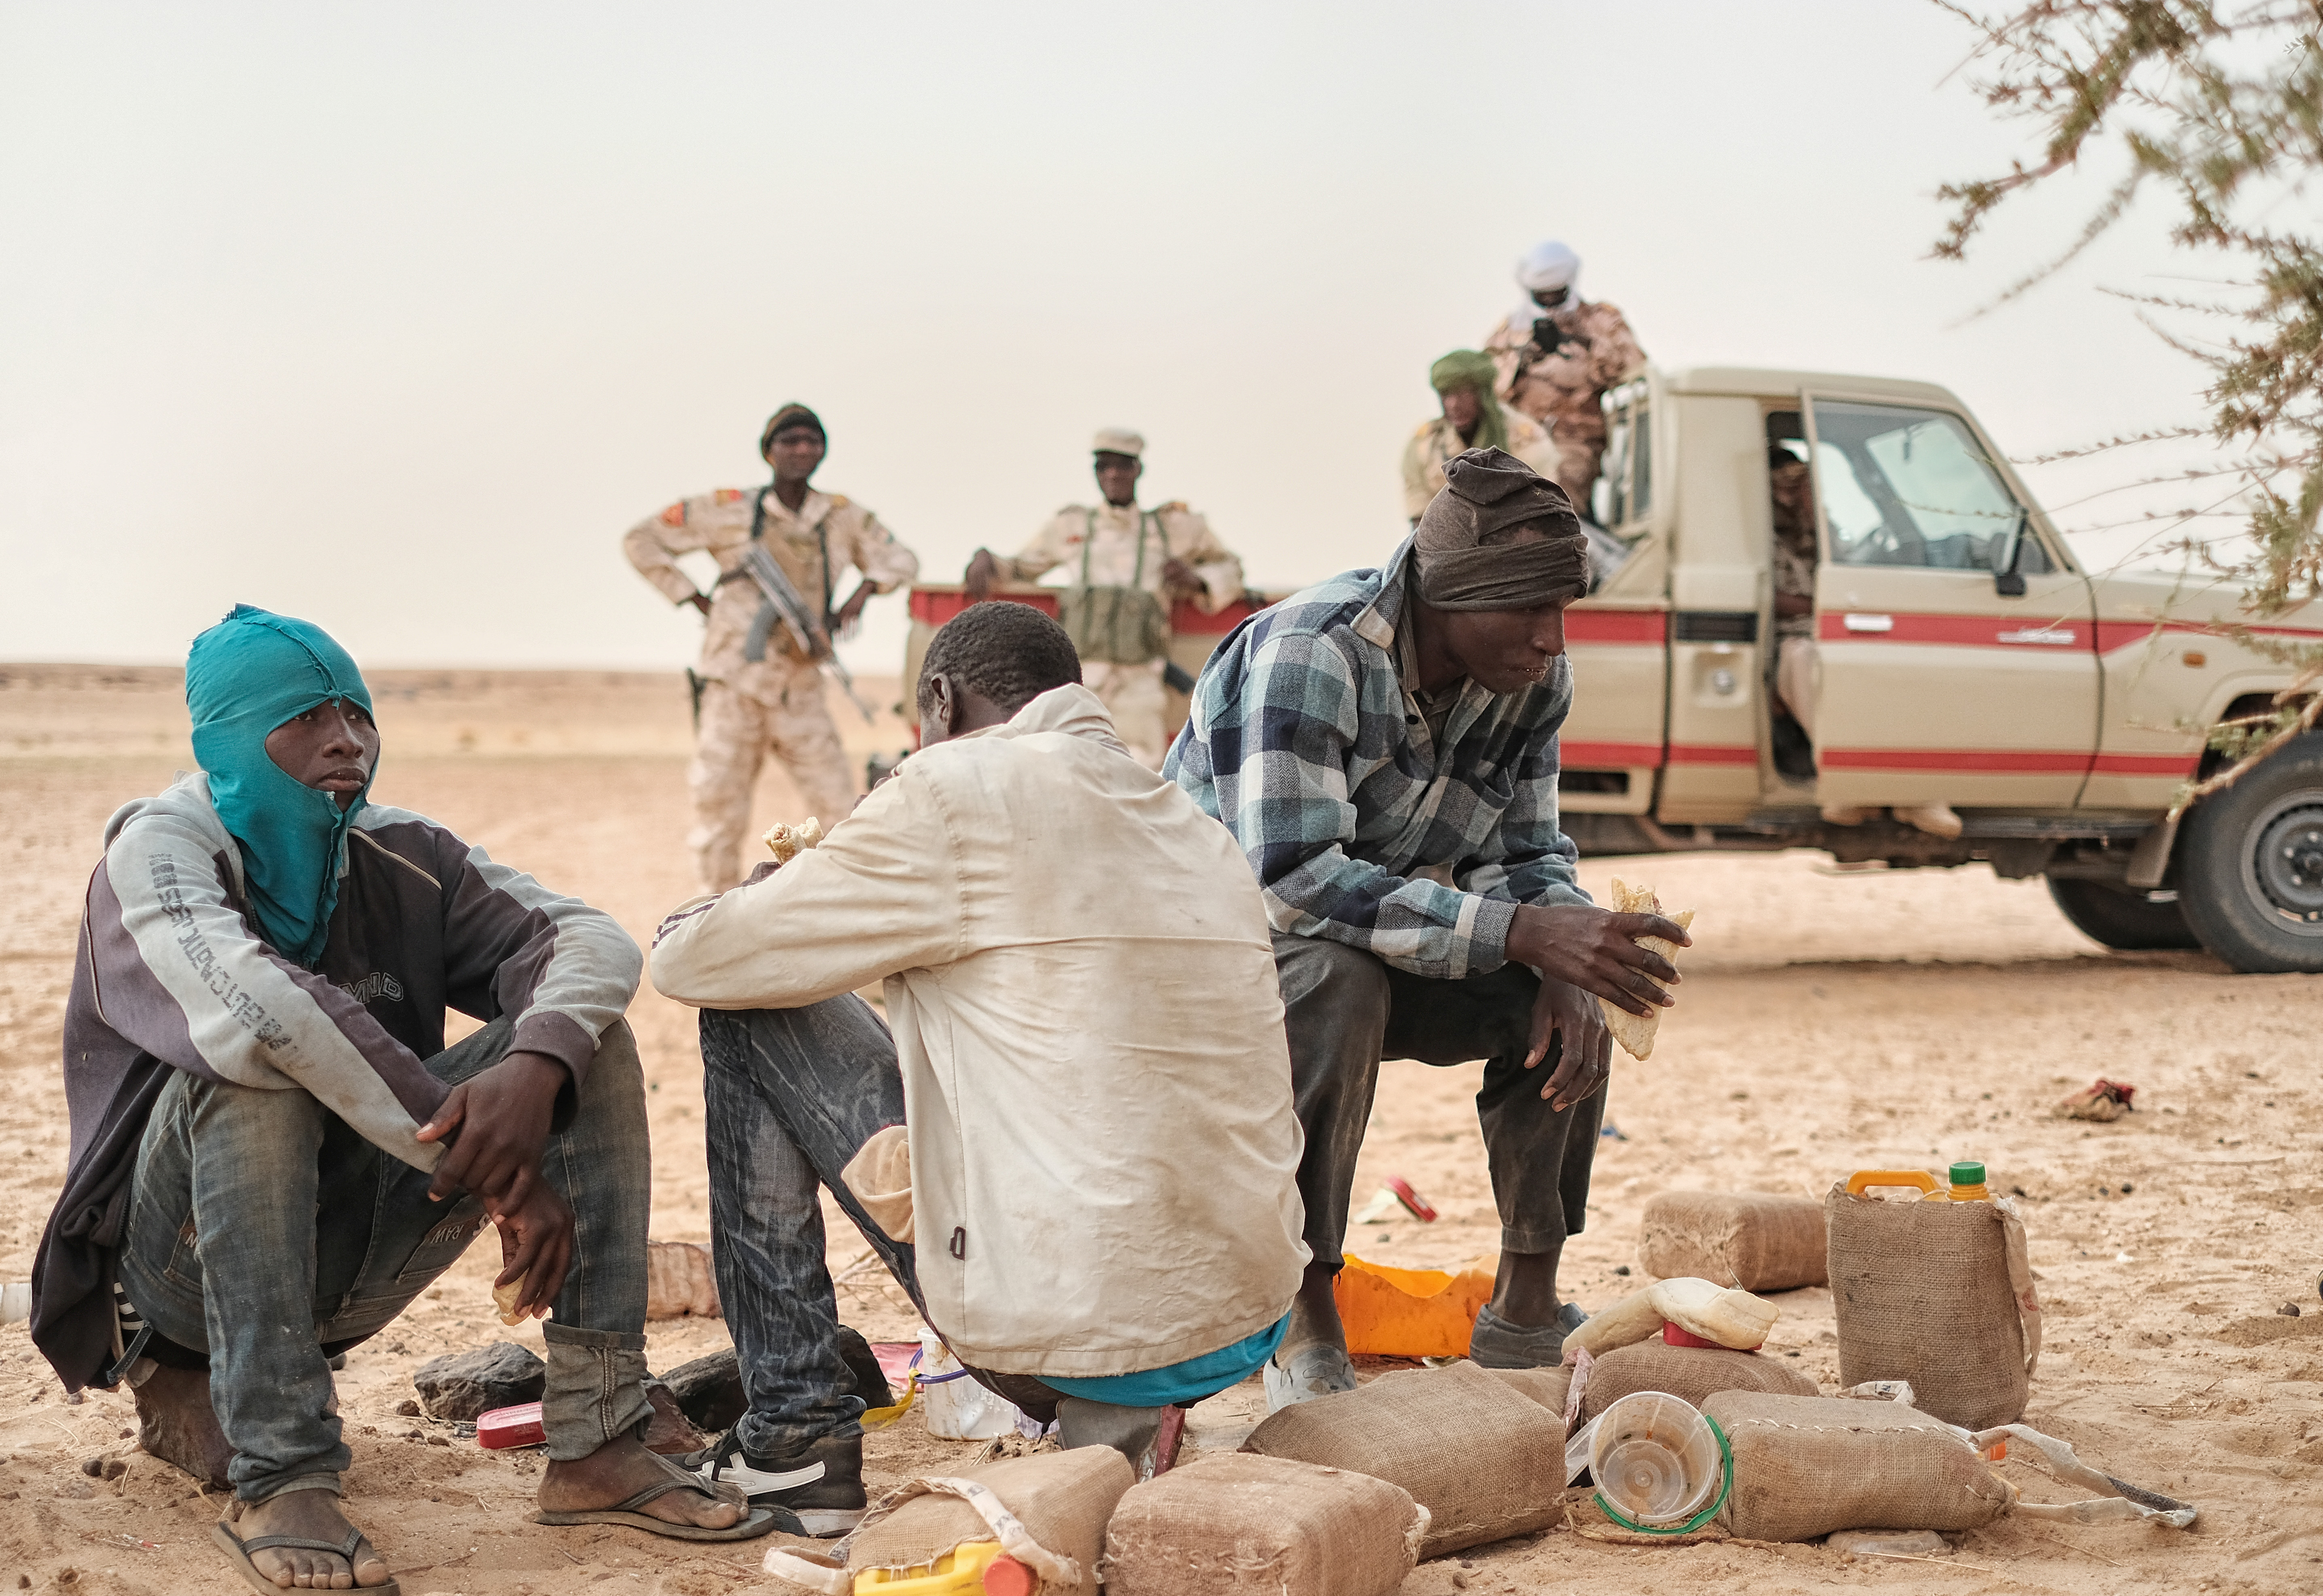 Migrants abandoned in the Sahara are found by a military patrol on the route to Libya (Image: Giacomo Zandonini)